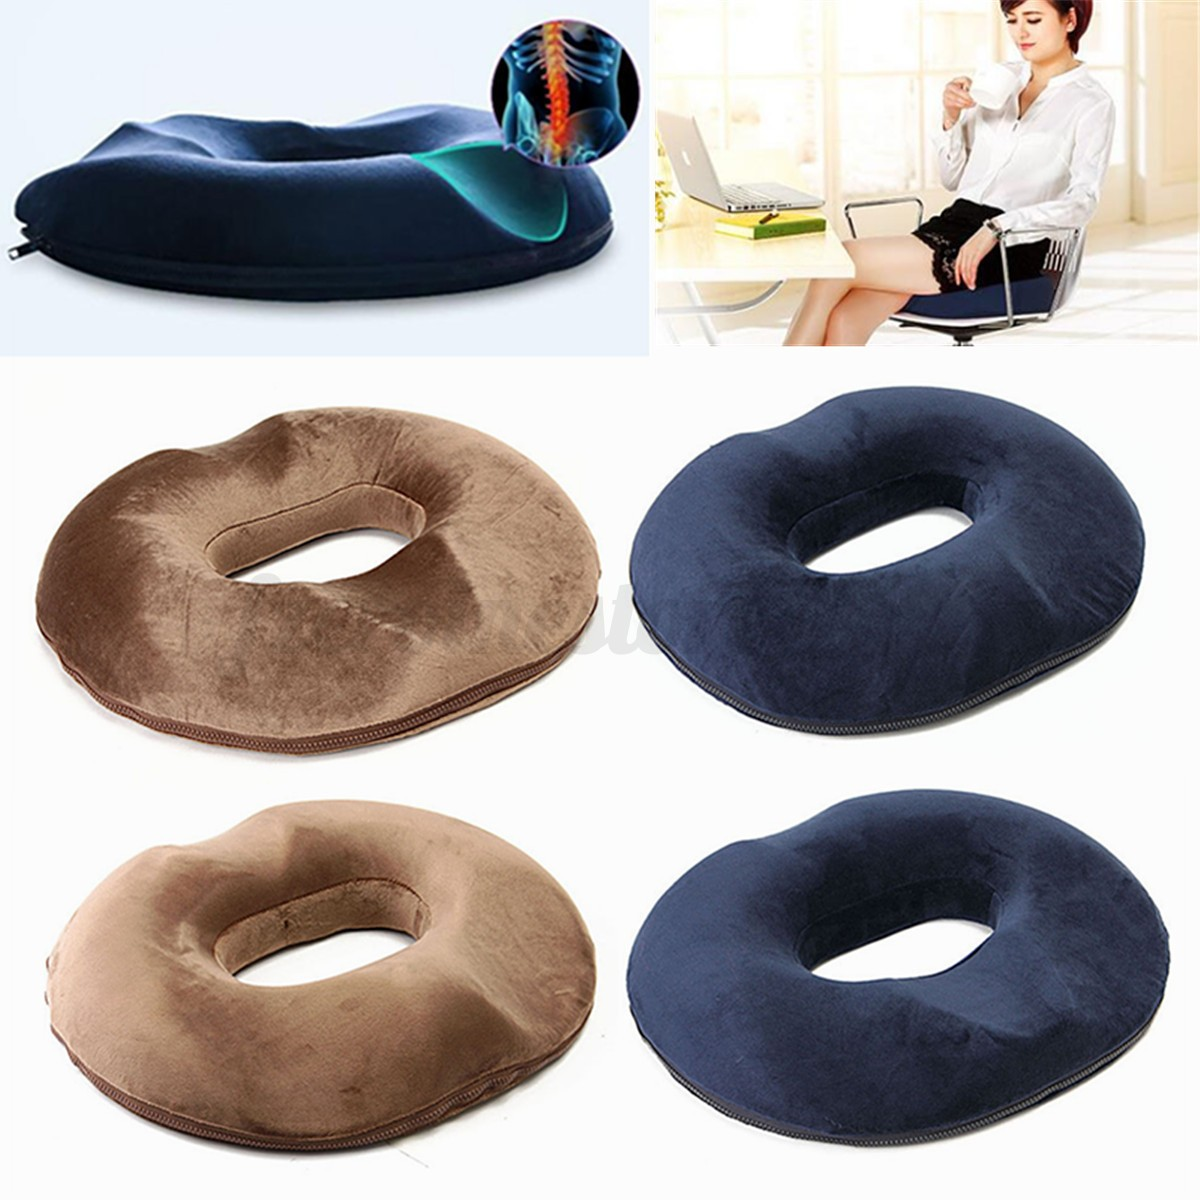 best office chair for hemorrhoids buy tables and chairs wholesale memory foam hemorrhoid treatment ring donut travel support